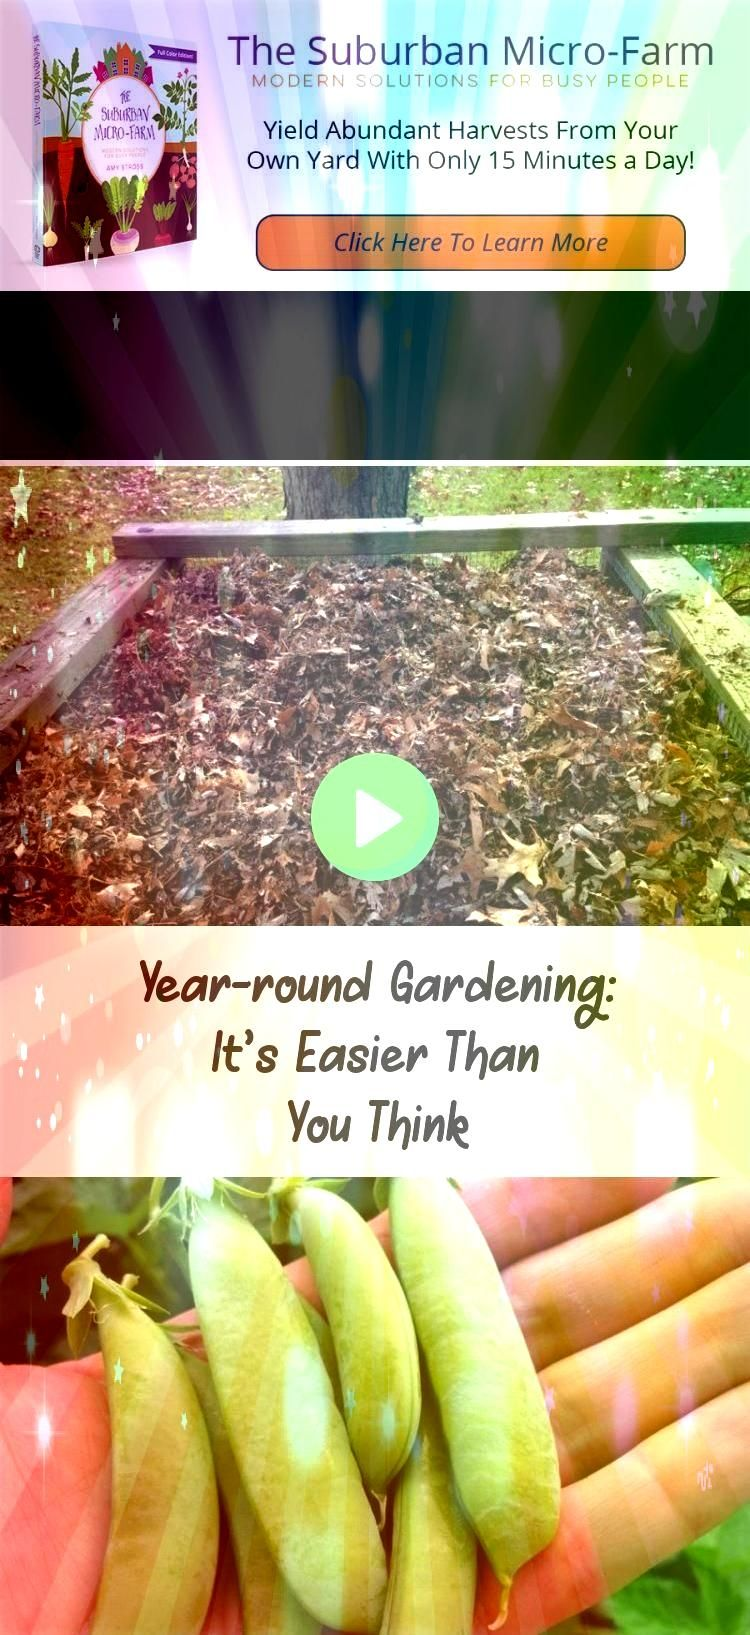 harvest to all 12 months of the year with a yearround gardening plan Are you ready to take your garden to the next levelExtend your harvest to all 12 months of the year w...